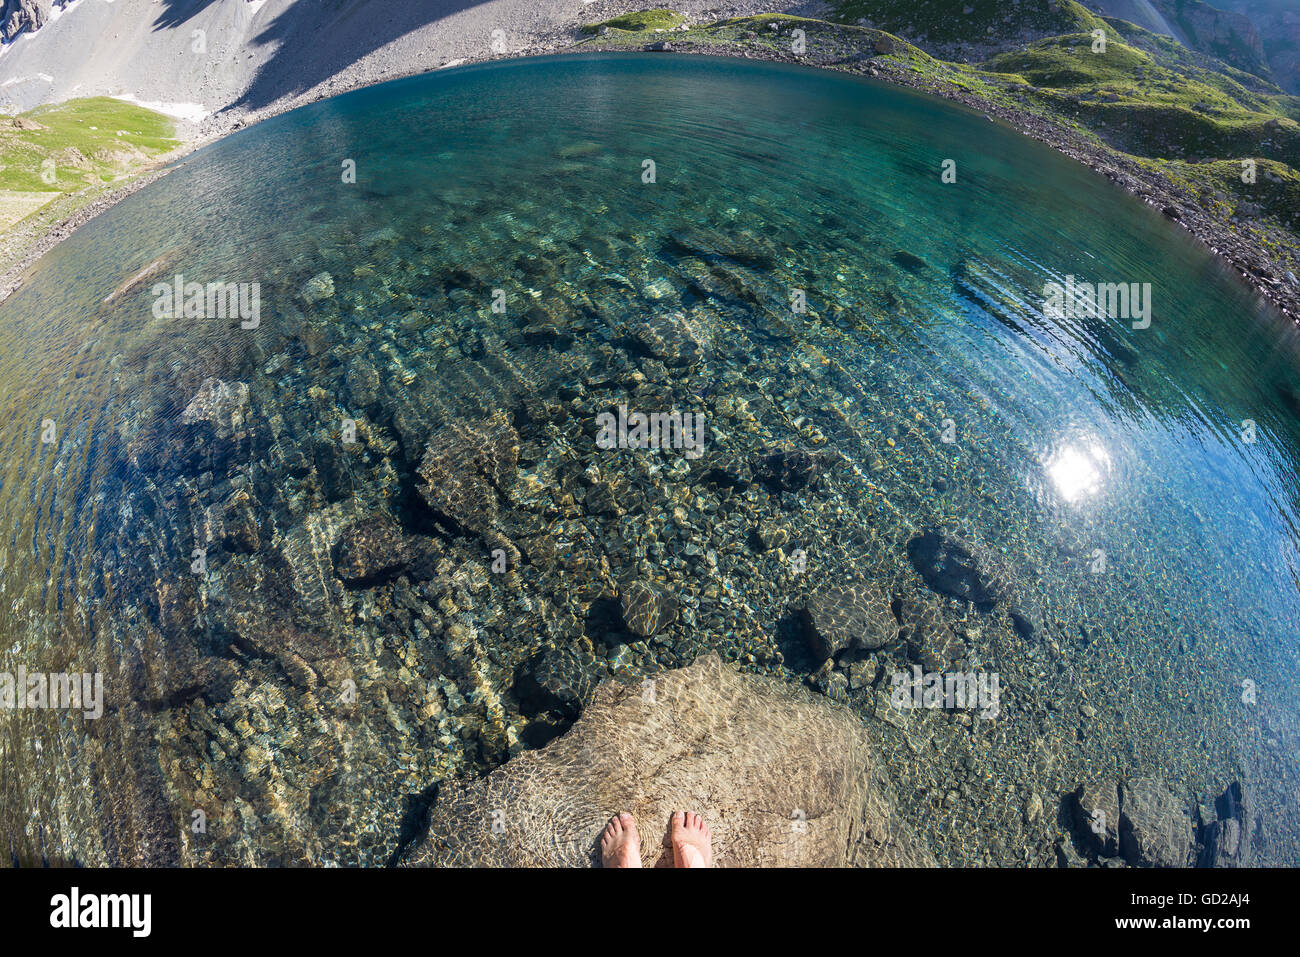 Fisheye view from above of alpine transparent lake and human feet into the water, in idyllic uncontaminated environment - Stock Image